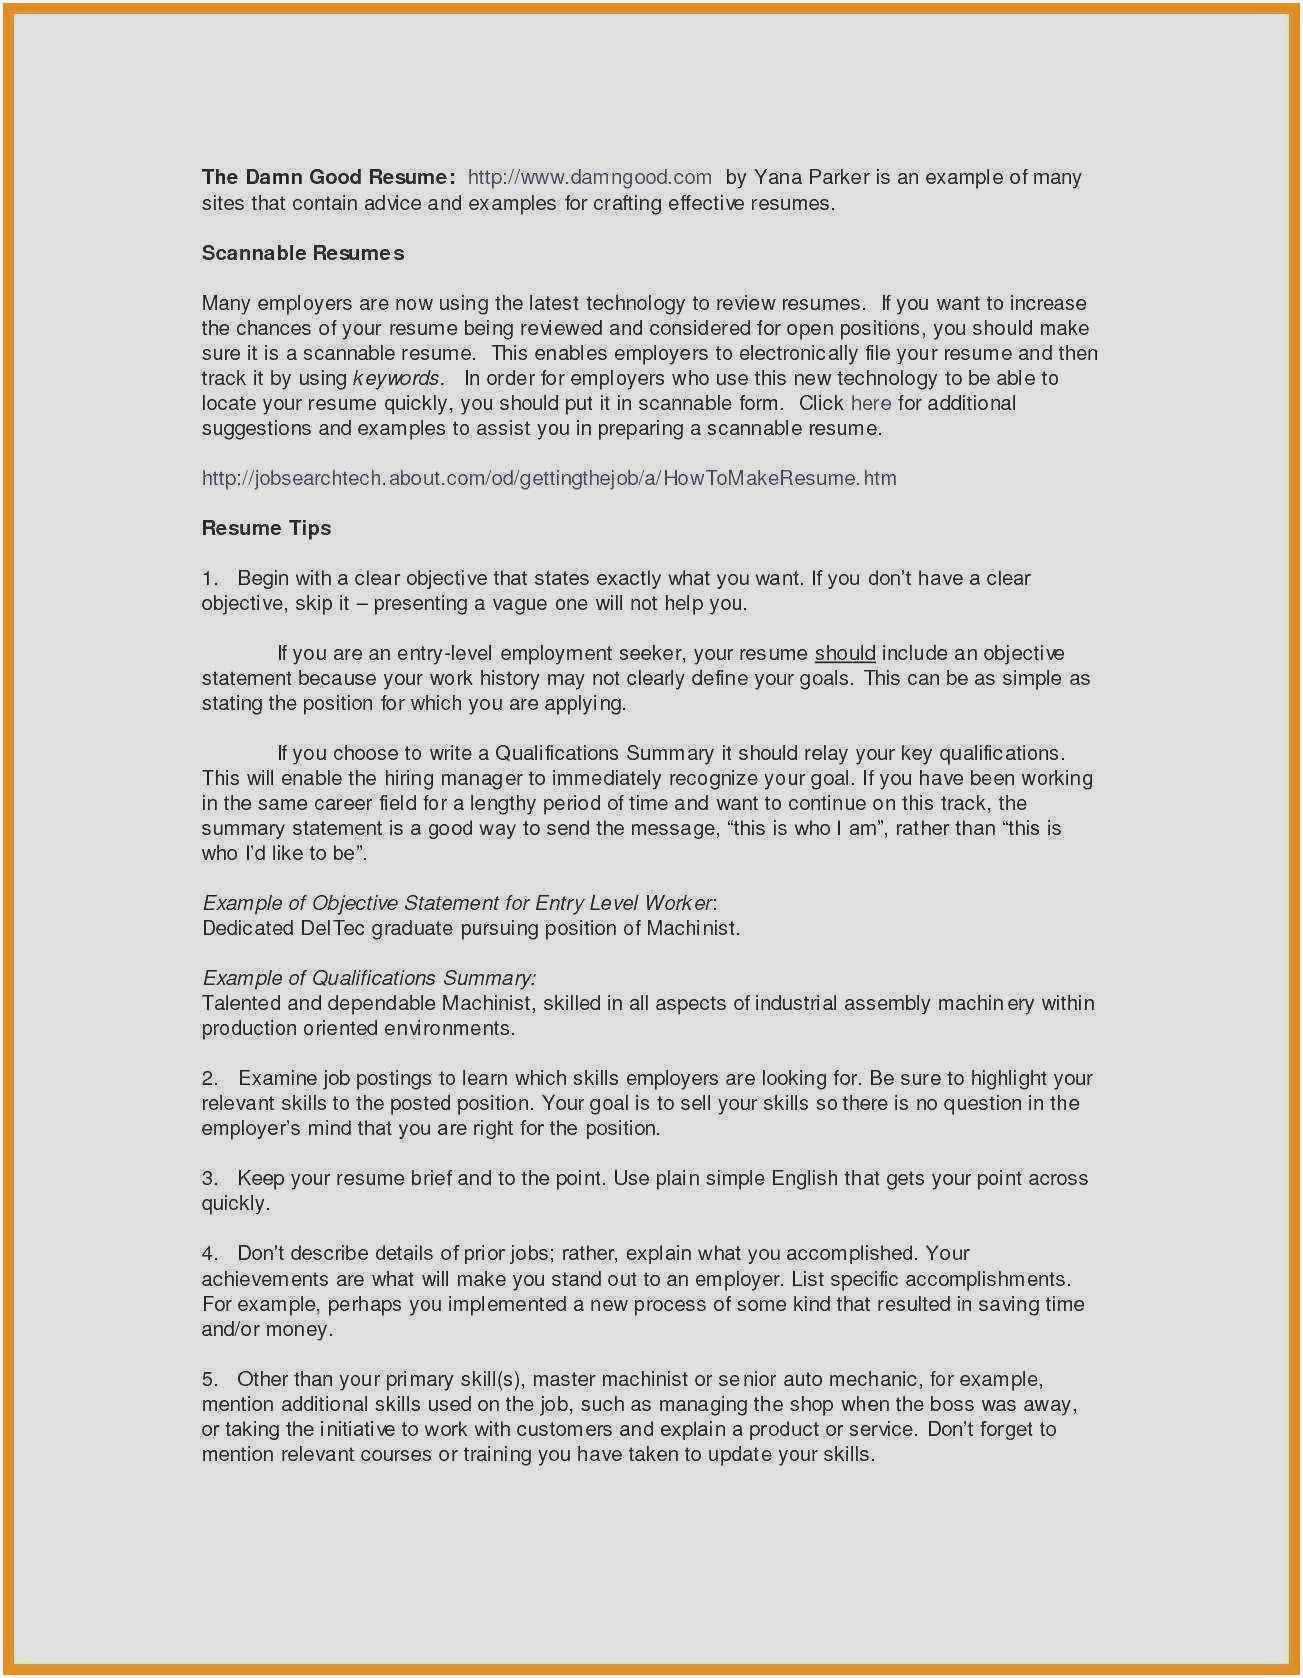 sample resume cover letter for dental assistant and photoshop template free iup help Resume Dental Assistant Resume And Cover Letter